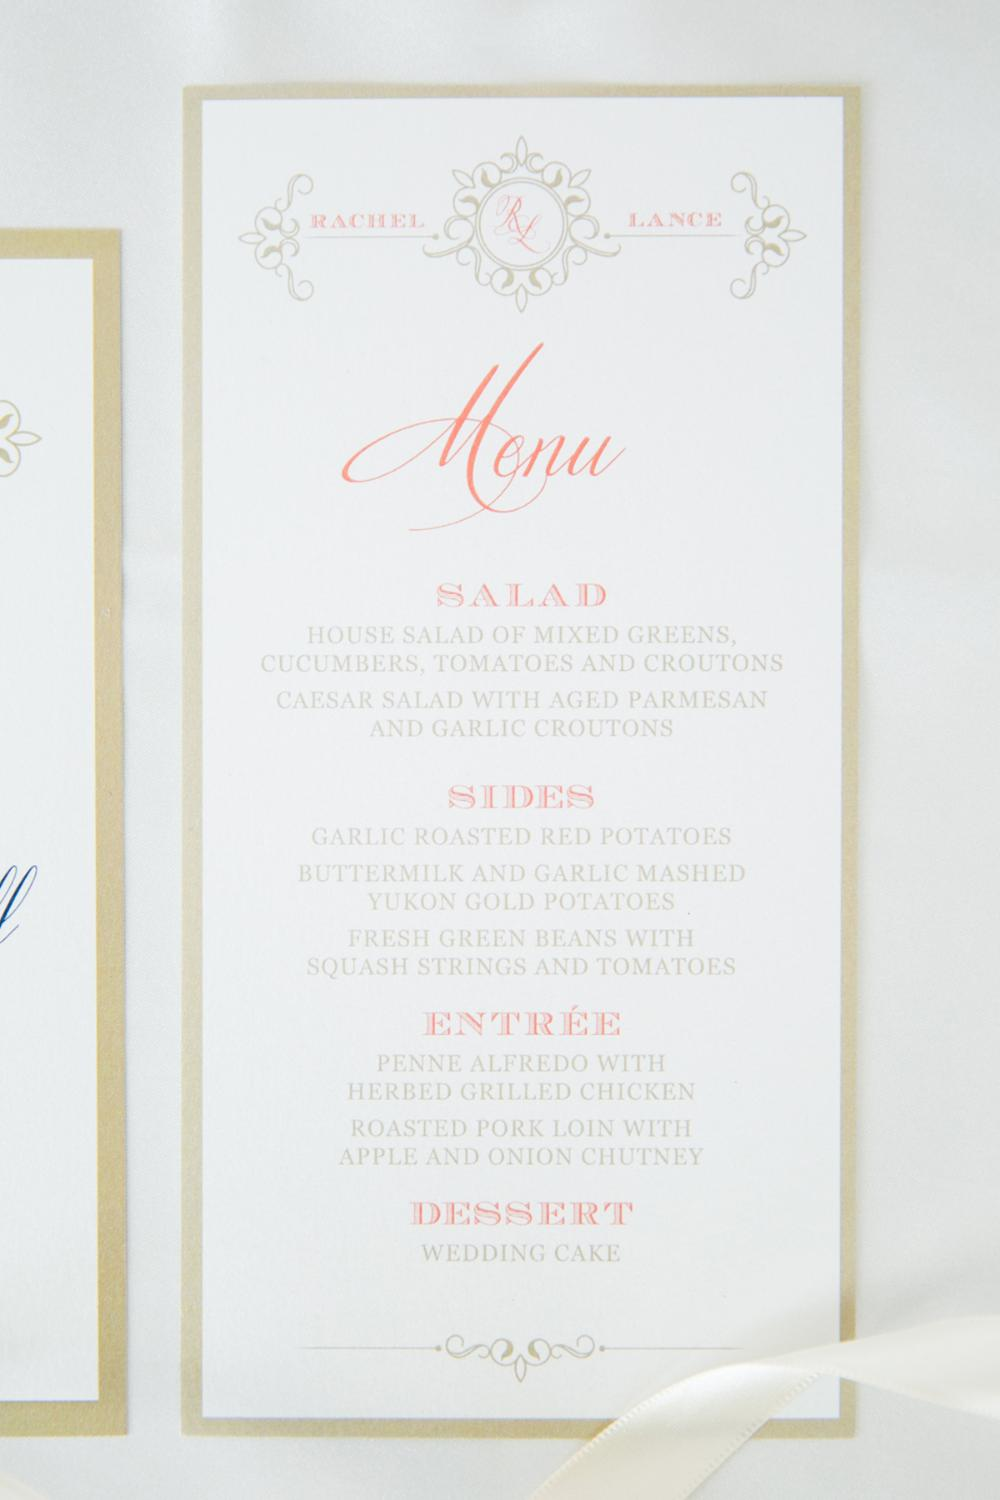 Coral and Gold Formal Elegant Wedding Menu